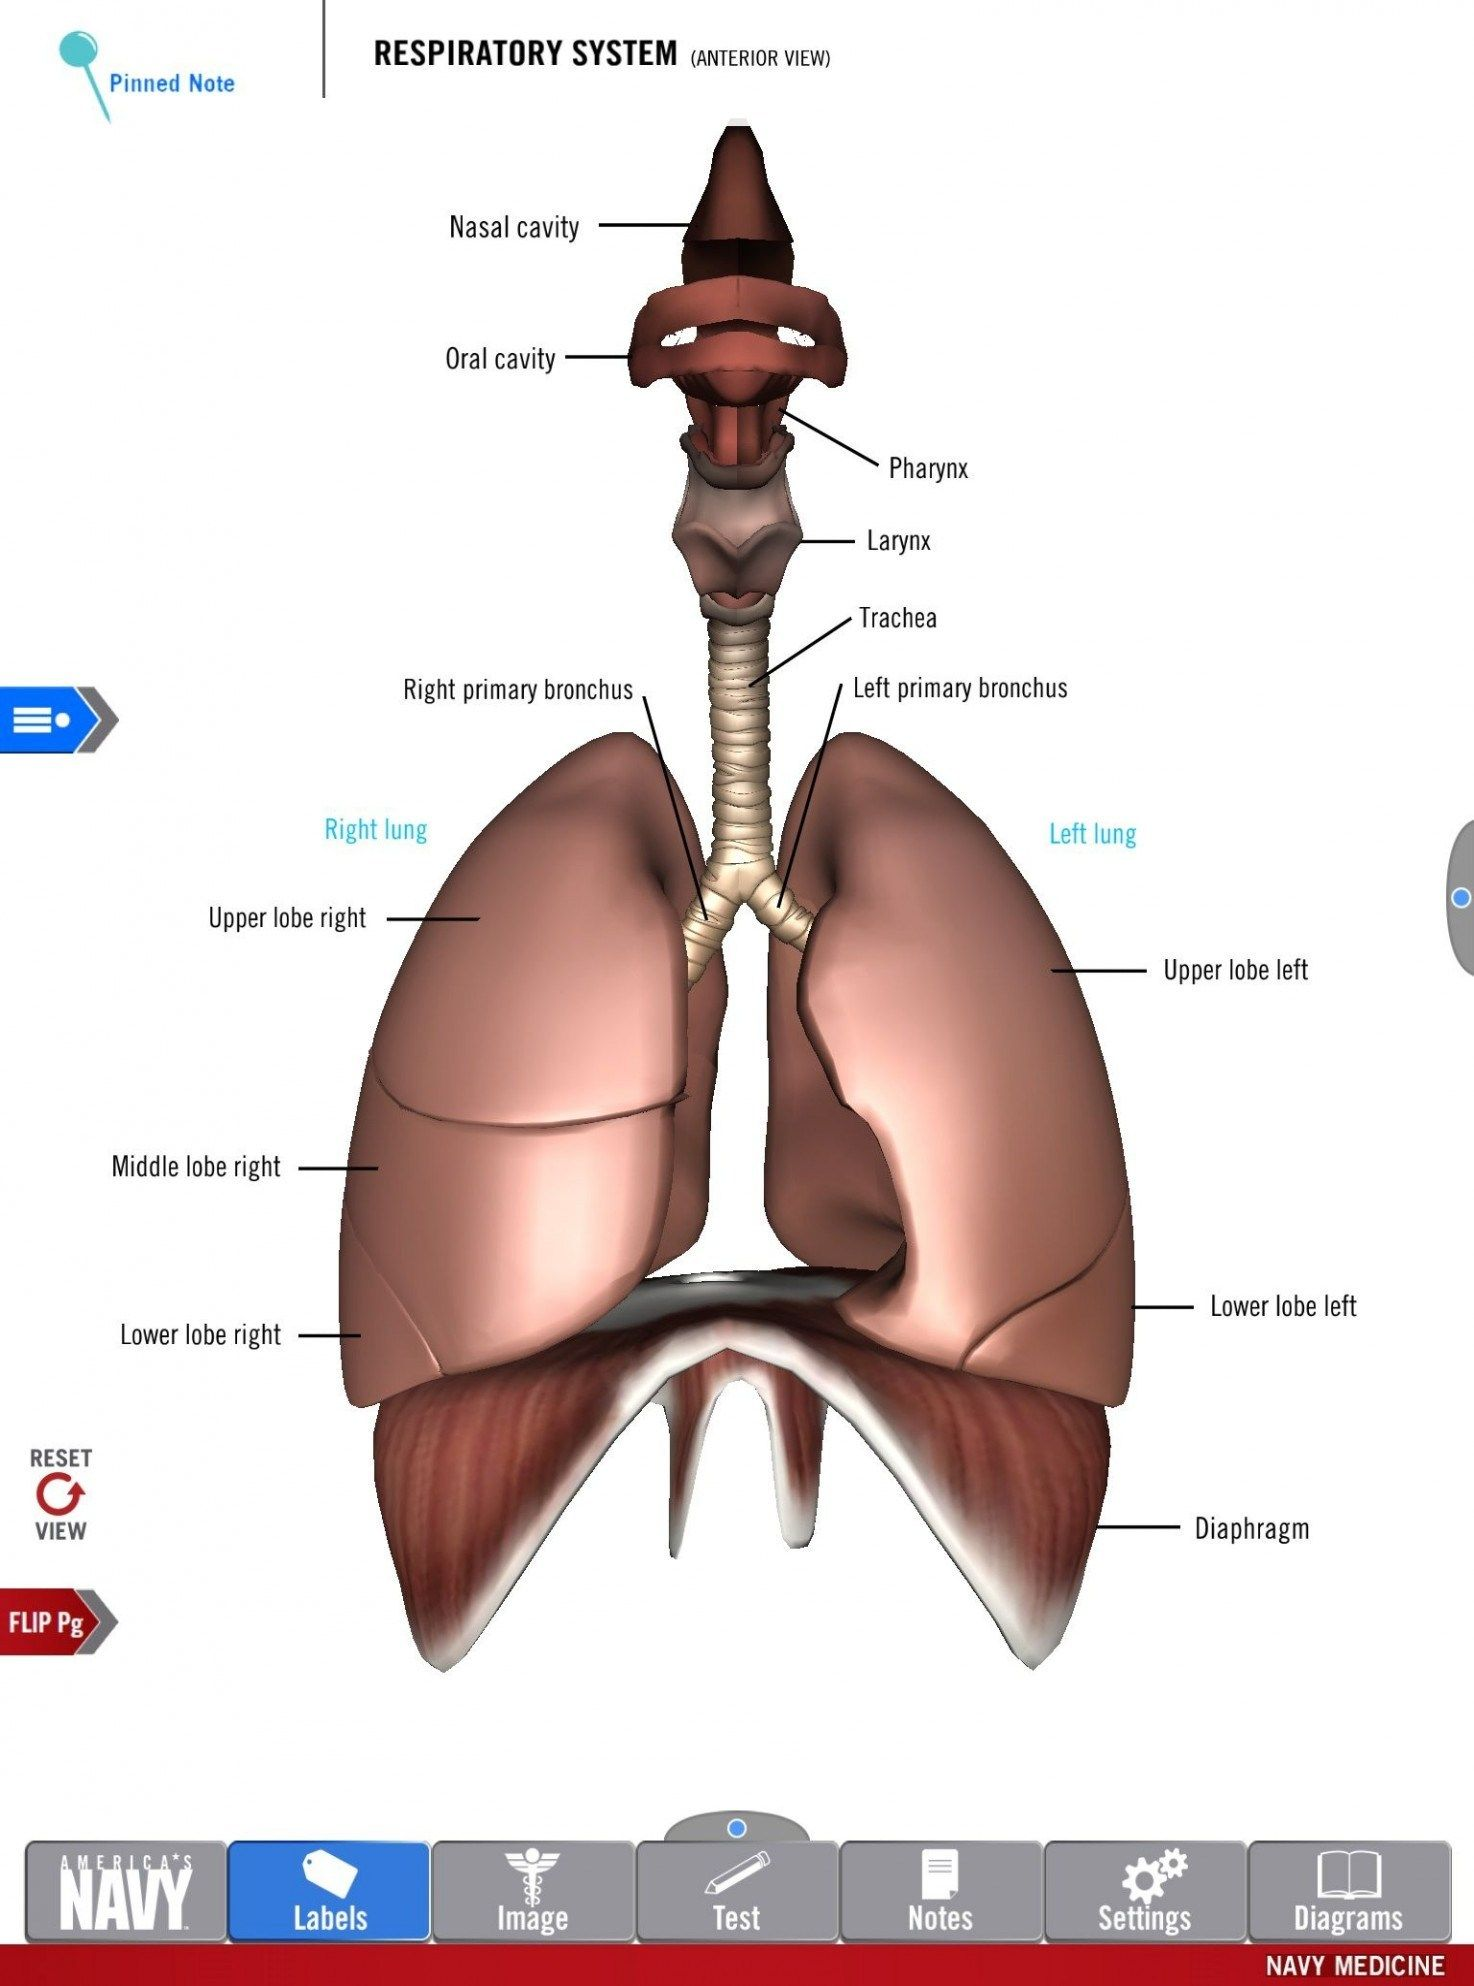 anatomy study guide anatomy of urine formation diagram of the respiratory system from [ 1474 x 1986 Pixel ]